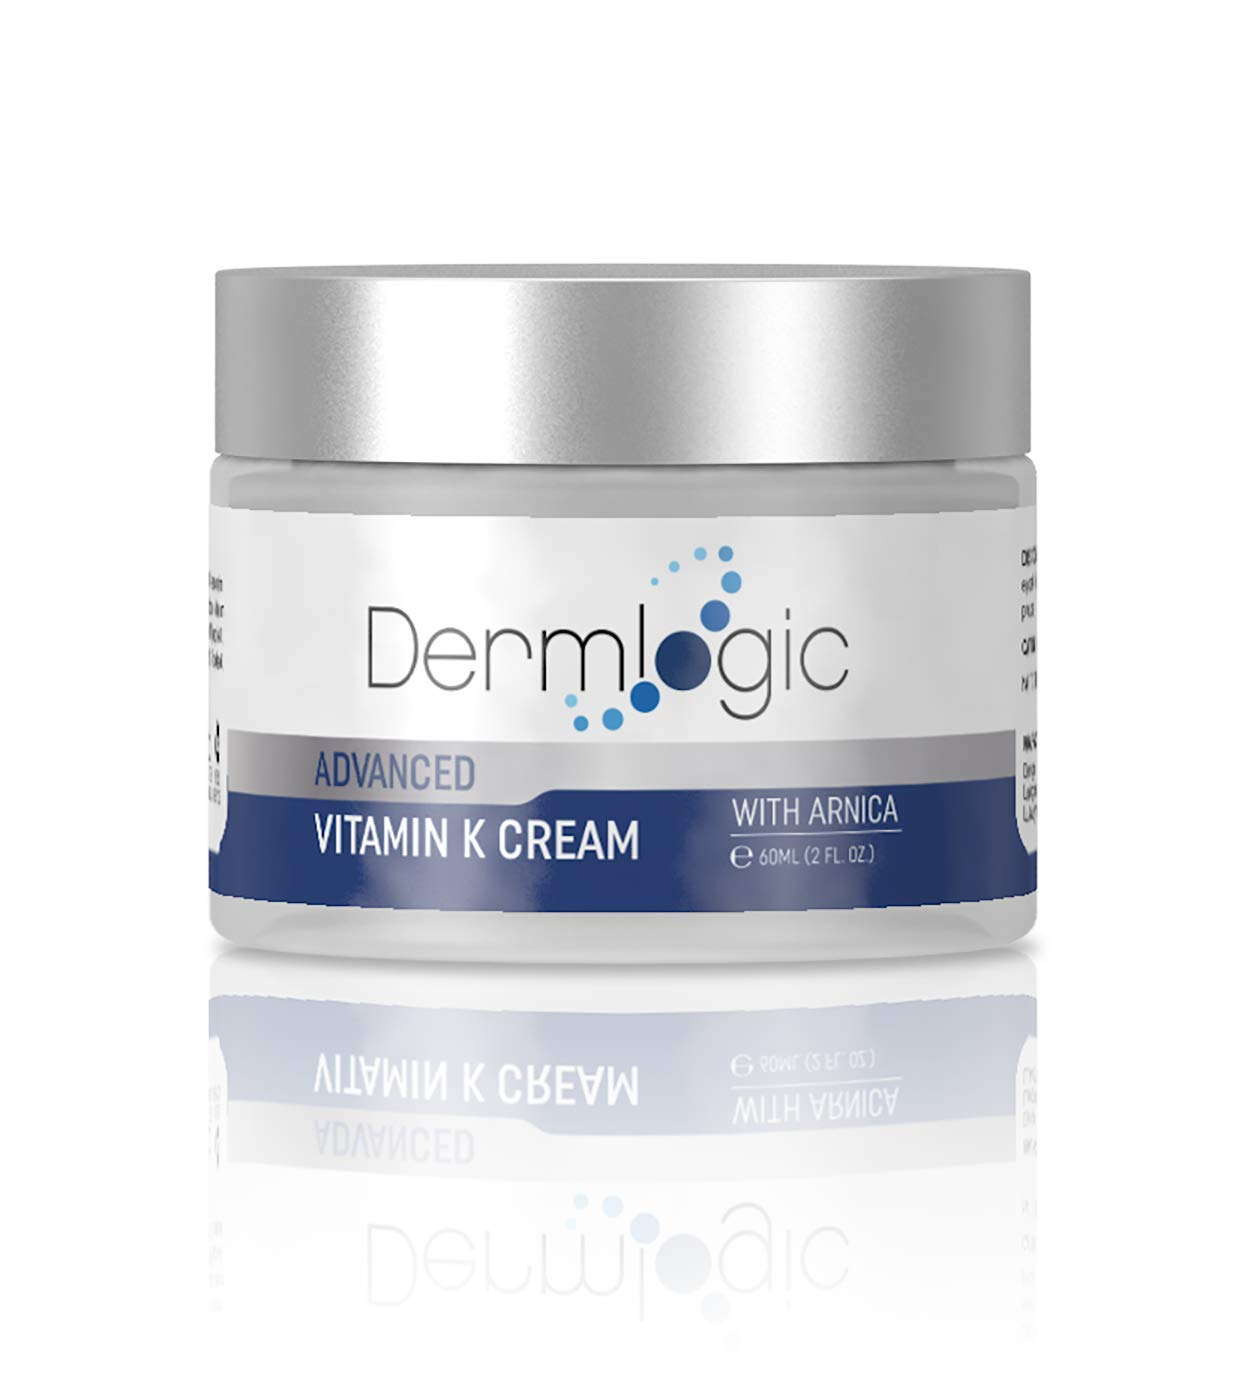 Dermlogic Vitamin K Cream - Reduces Under Eye Dark Circles, Fine Lines, Puffiness, Wrinkles w/ Arnica. Dark Spot Corrector